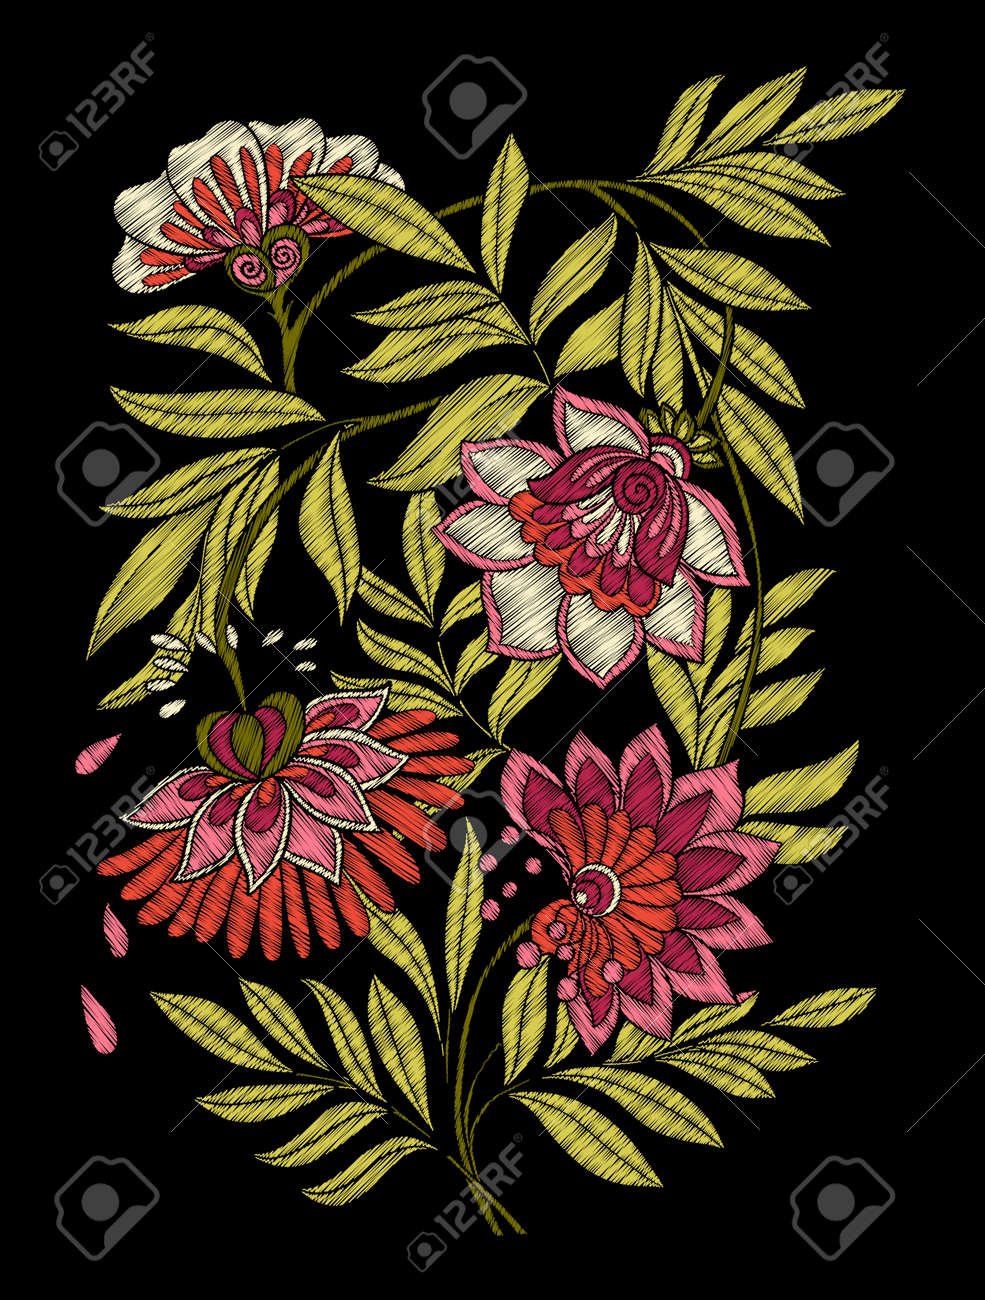 Embroidery Embroidered Design Elements With Flowers And Leaves Royalty Free Cliparts Vectors And Stock Illustration Image 86220322